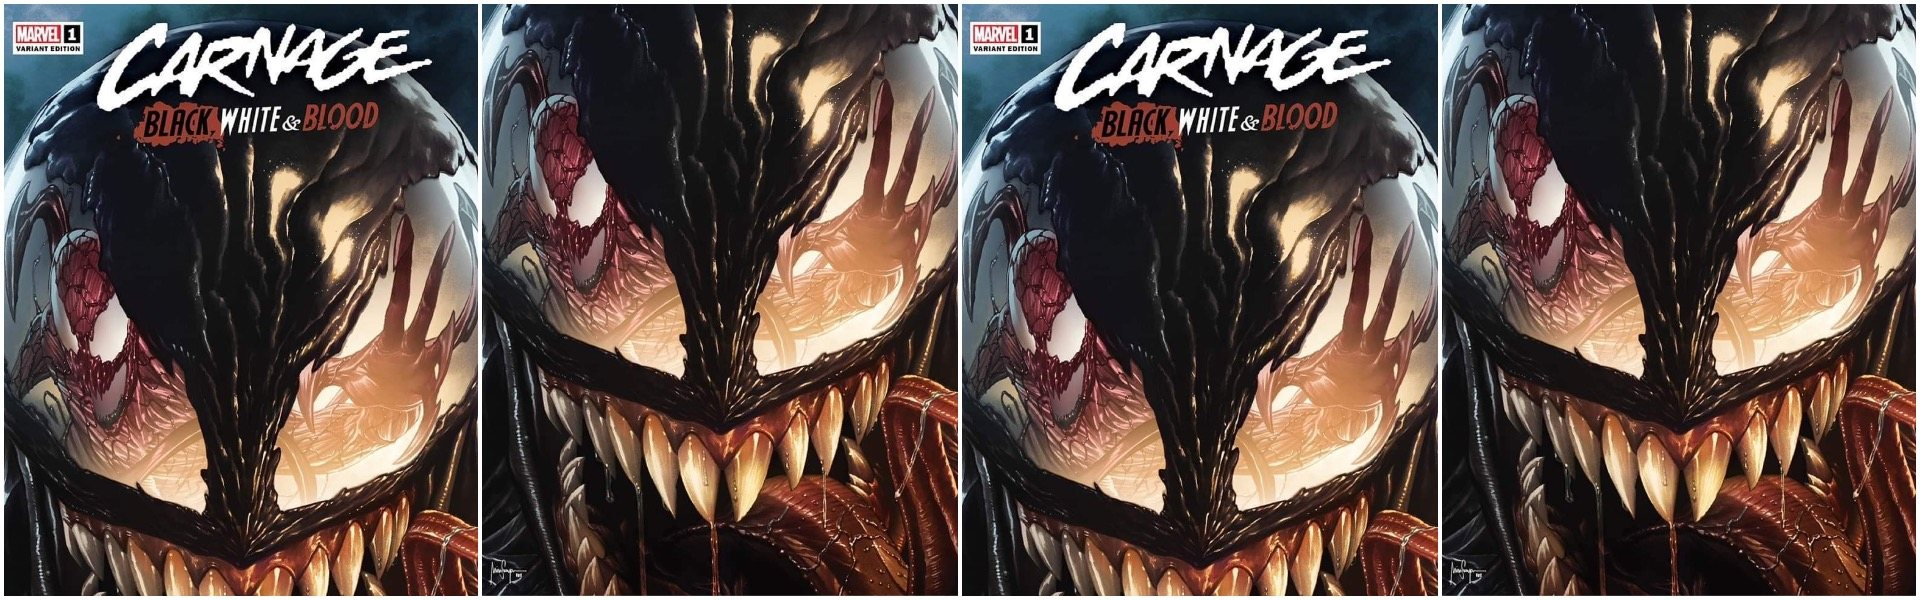 Carnage Black White and Blood #1 Mico Suayan Variants